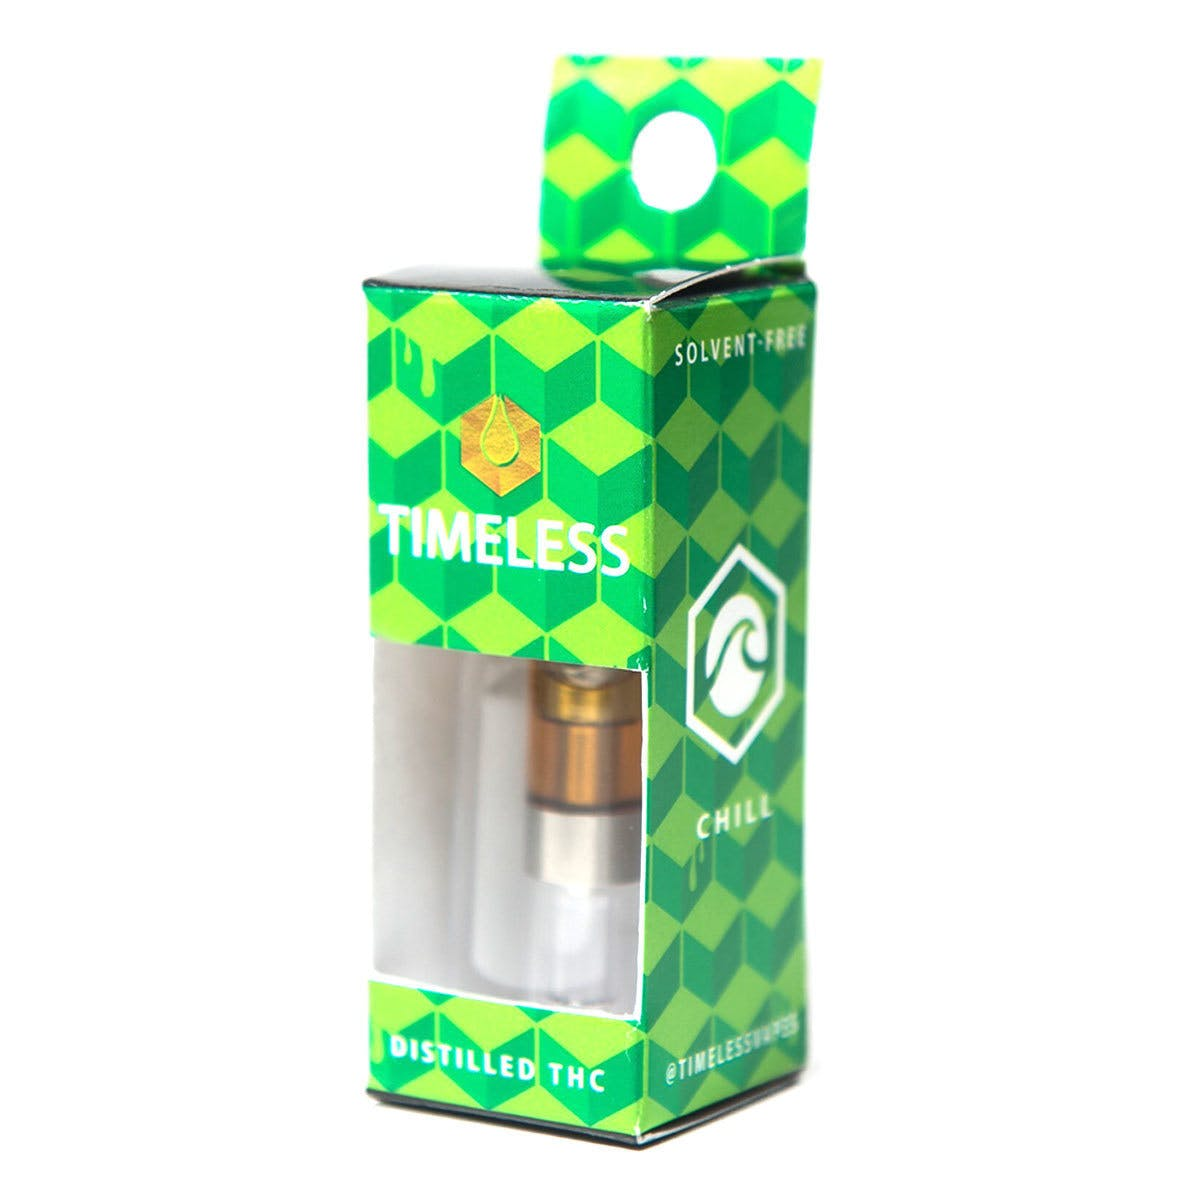 concentrate-timeless-vapes-500mg-headband-vape-cartridge-chill